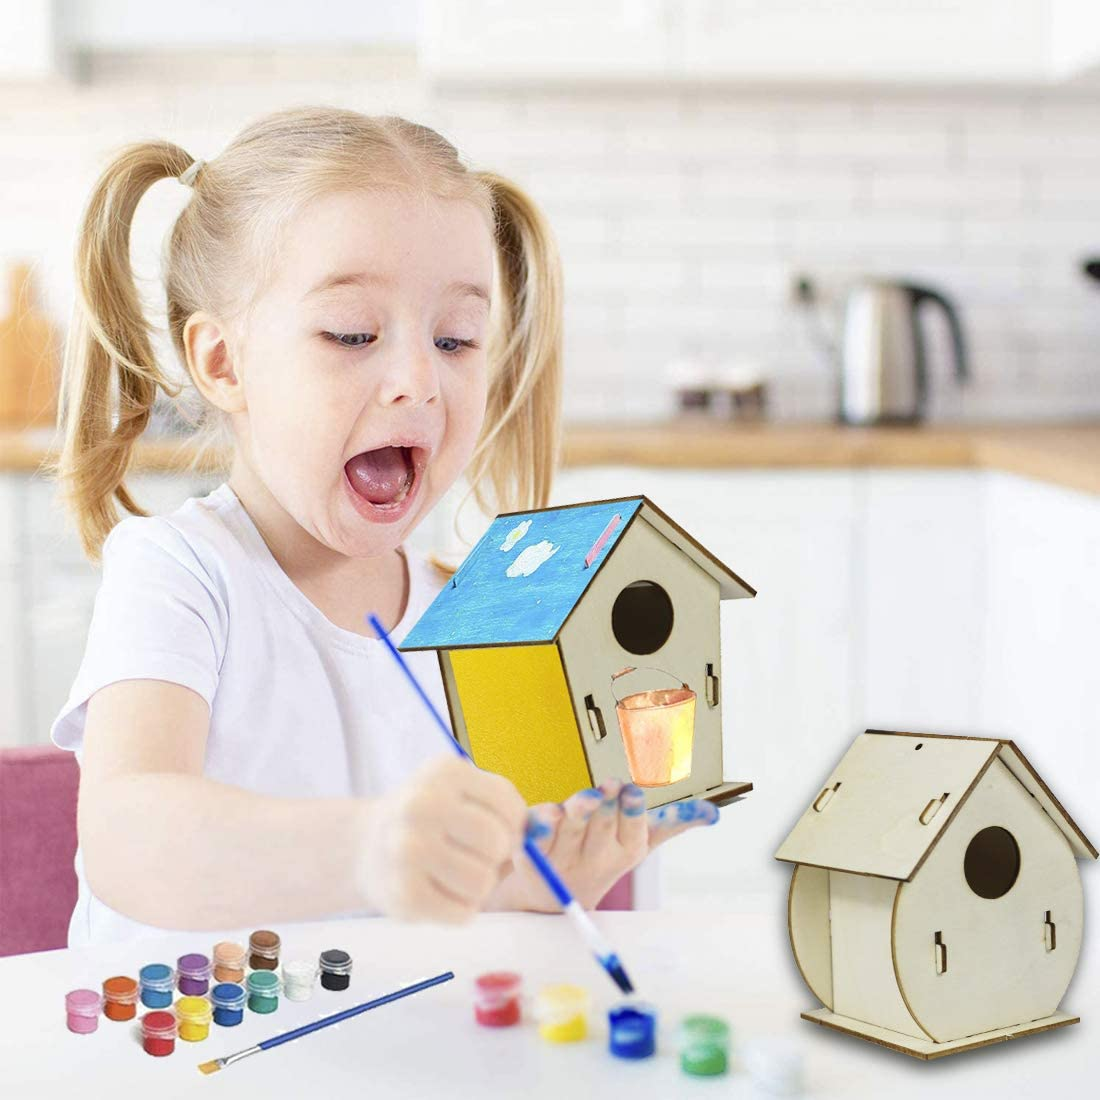 Wooden Birds House Art Crafts Kits Toys for Kids Girls Boys Xmas Gifts for 4-8 9 10 11 12 Year Old Arts and Crafts for Kids Ages 4-12 2 Packs DIY Bird House Kits for Children to Build and Paint